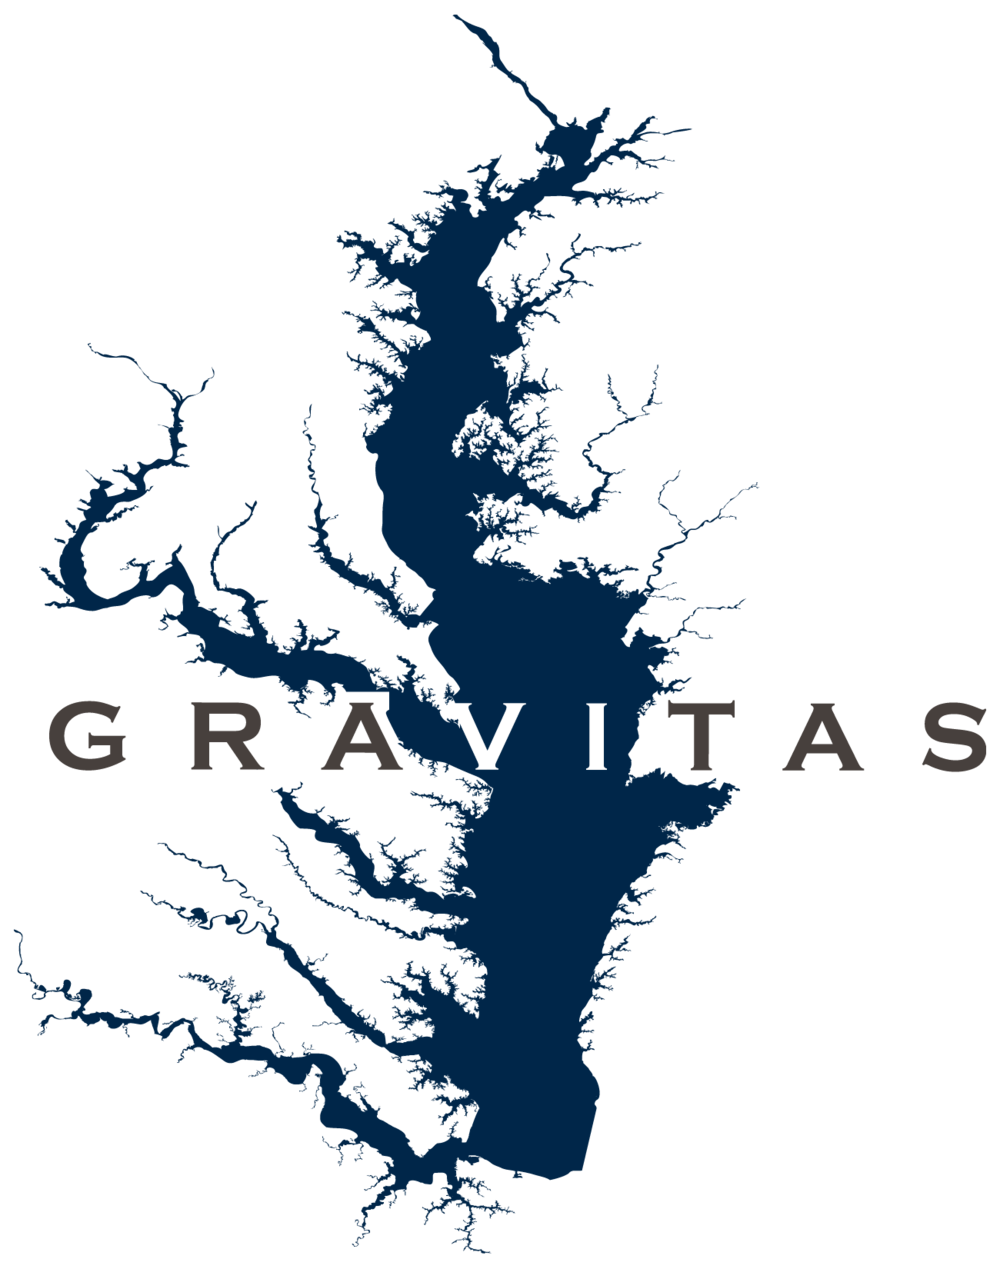 gravitas-FINAL-logo-color.png